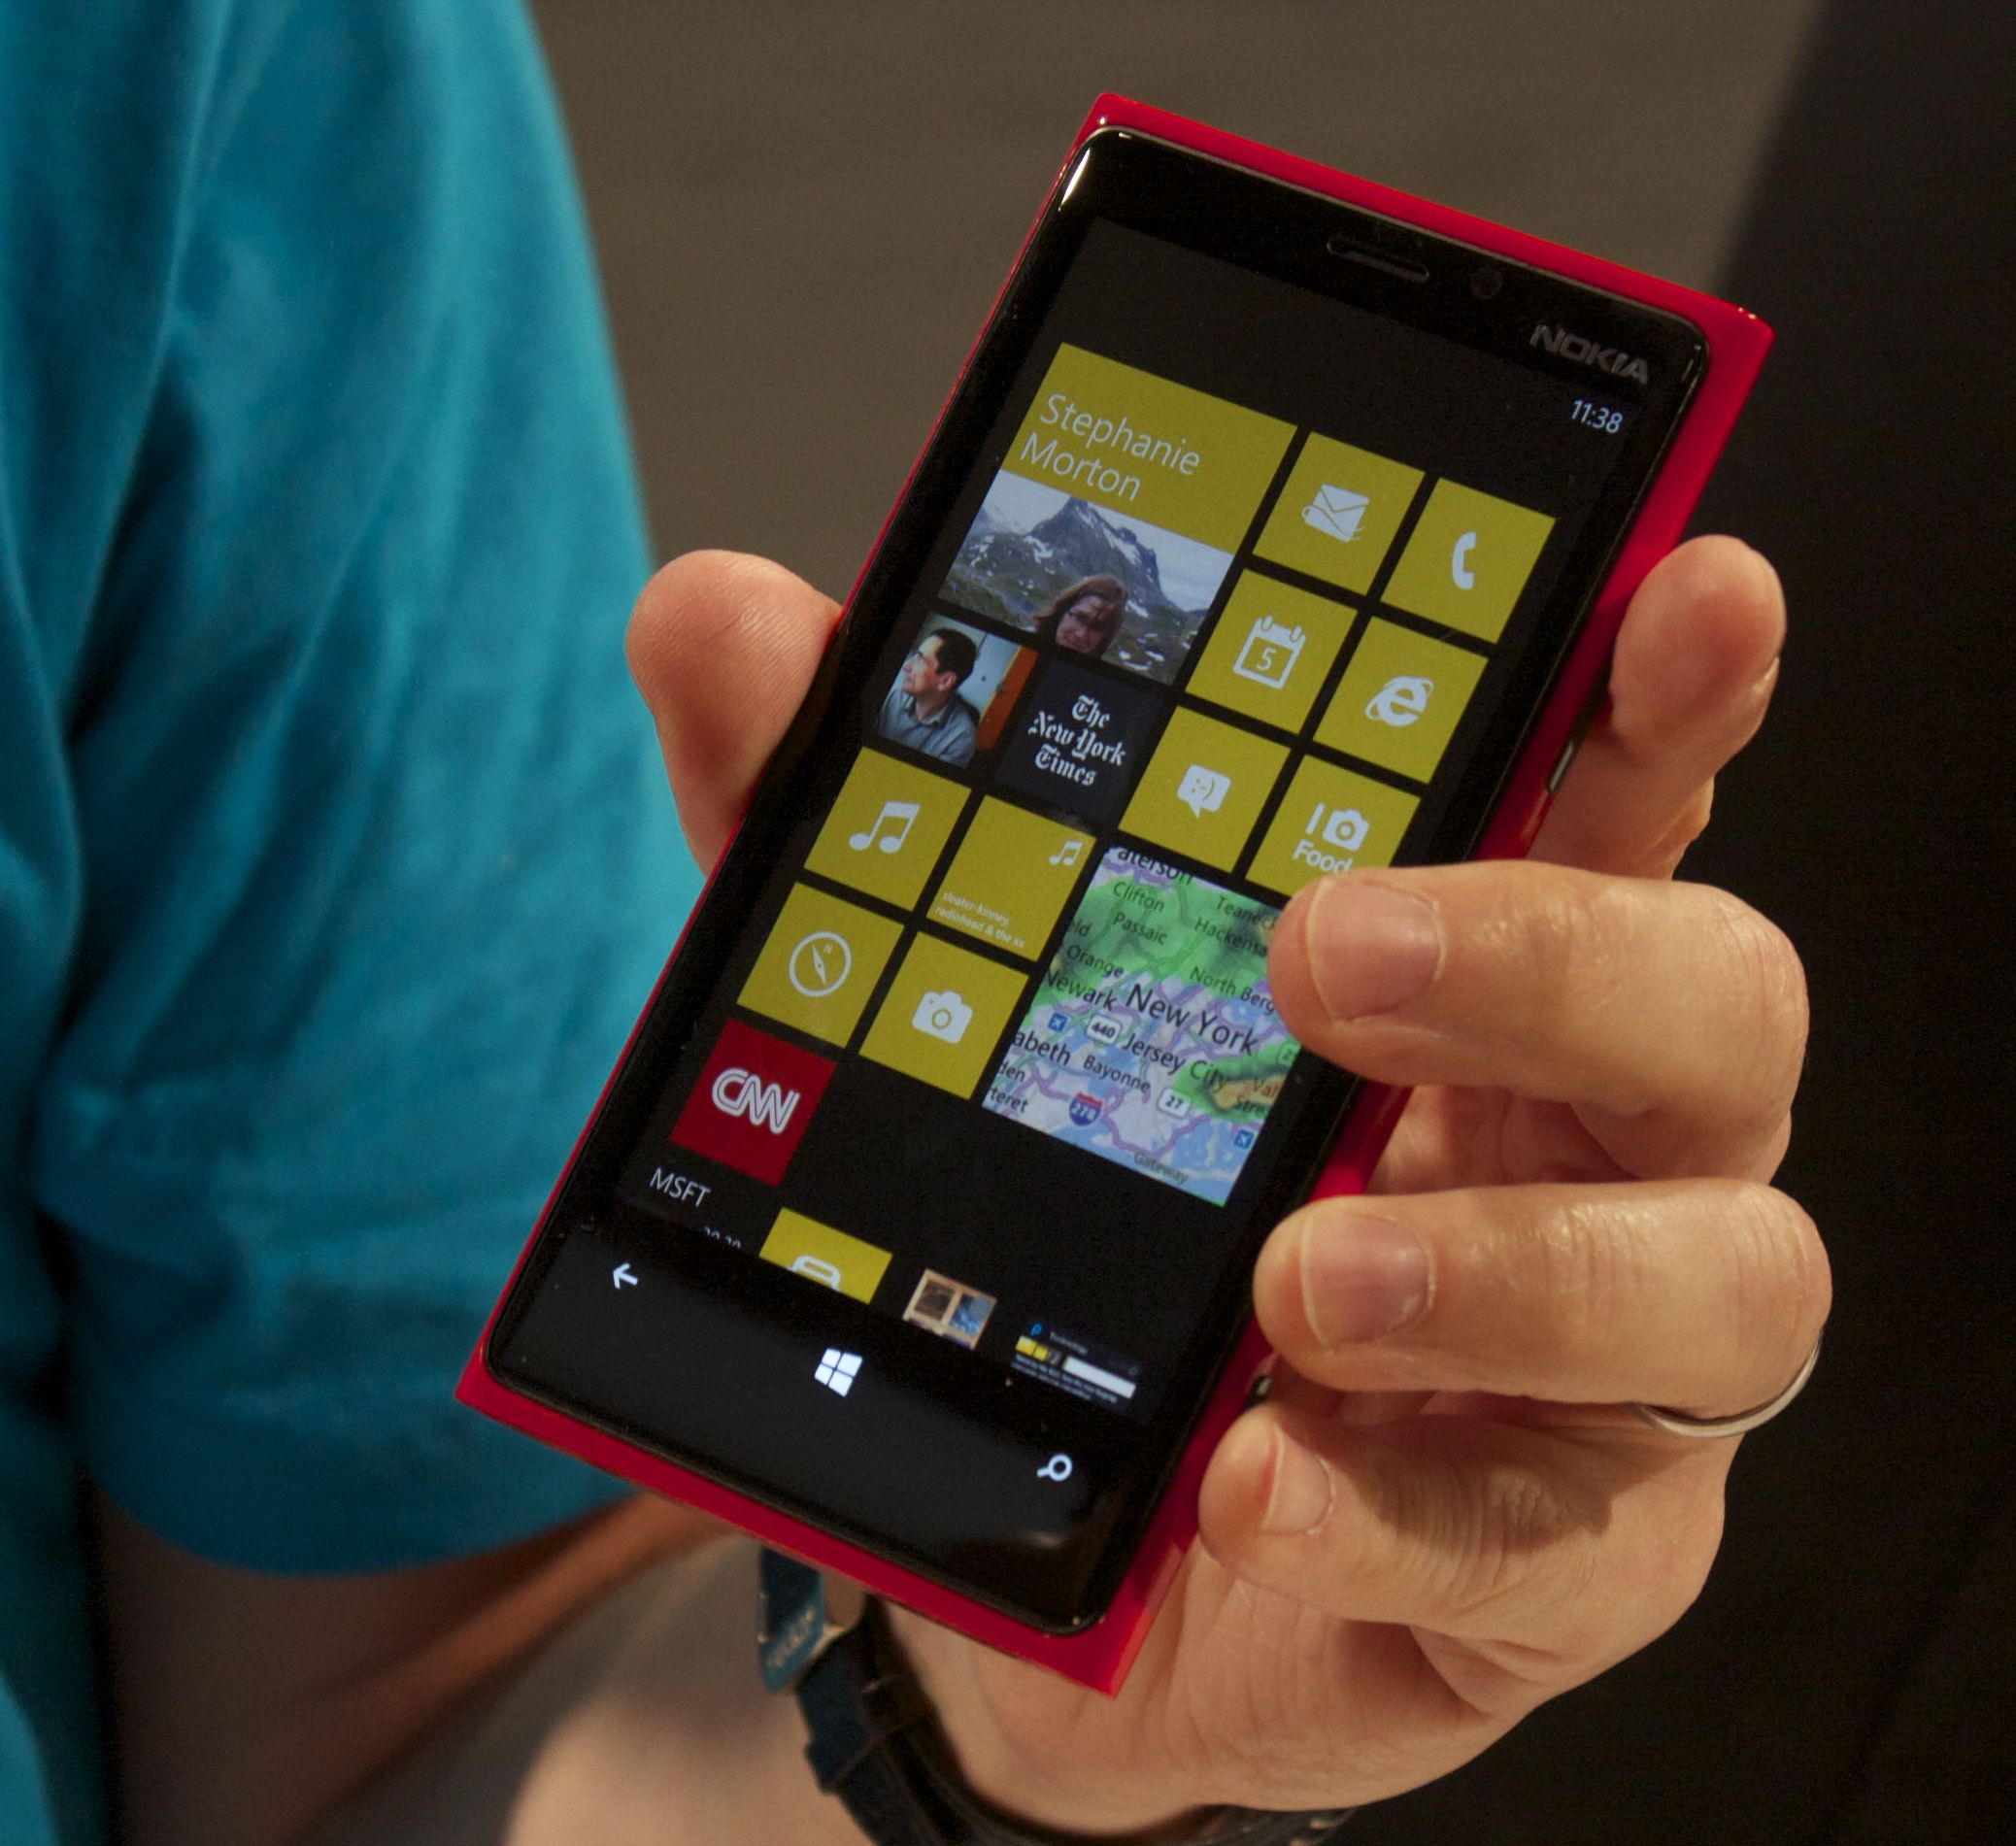 windows phone is now officially dead a sad tale of what. Black Bedroom Furniture Sets. Home Design Ideas